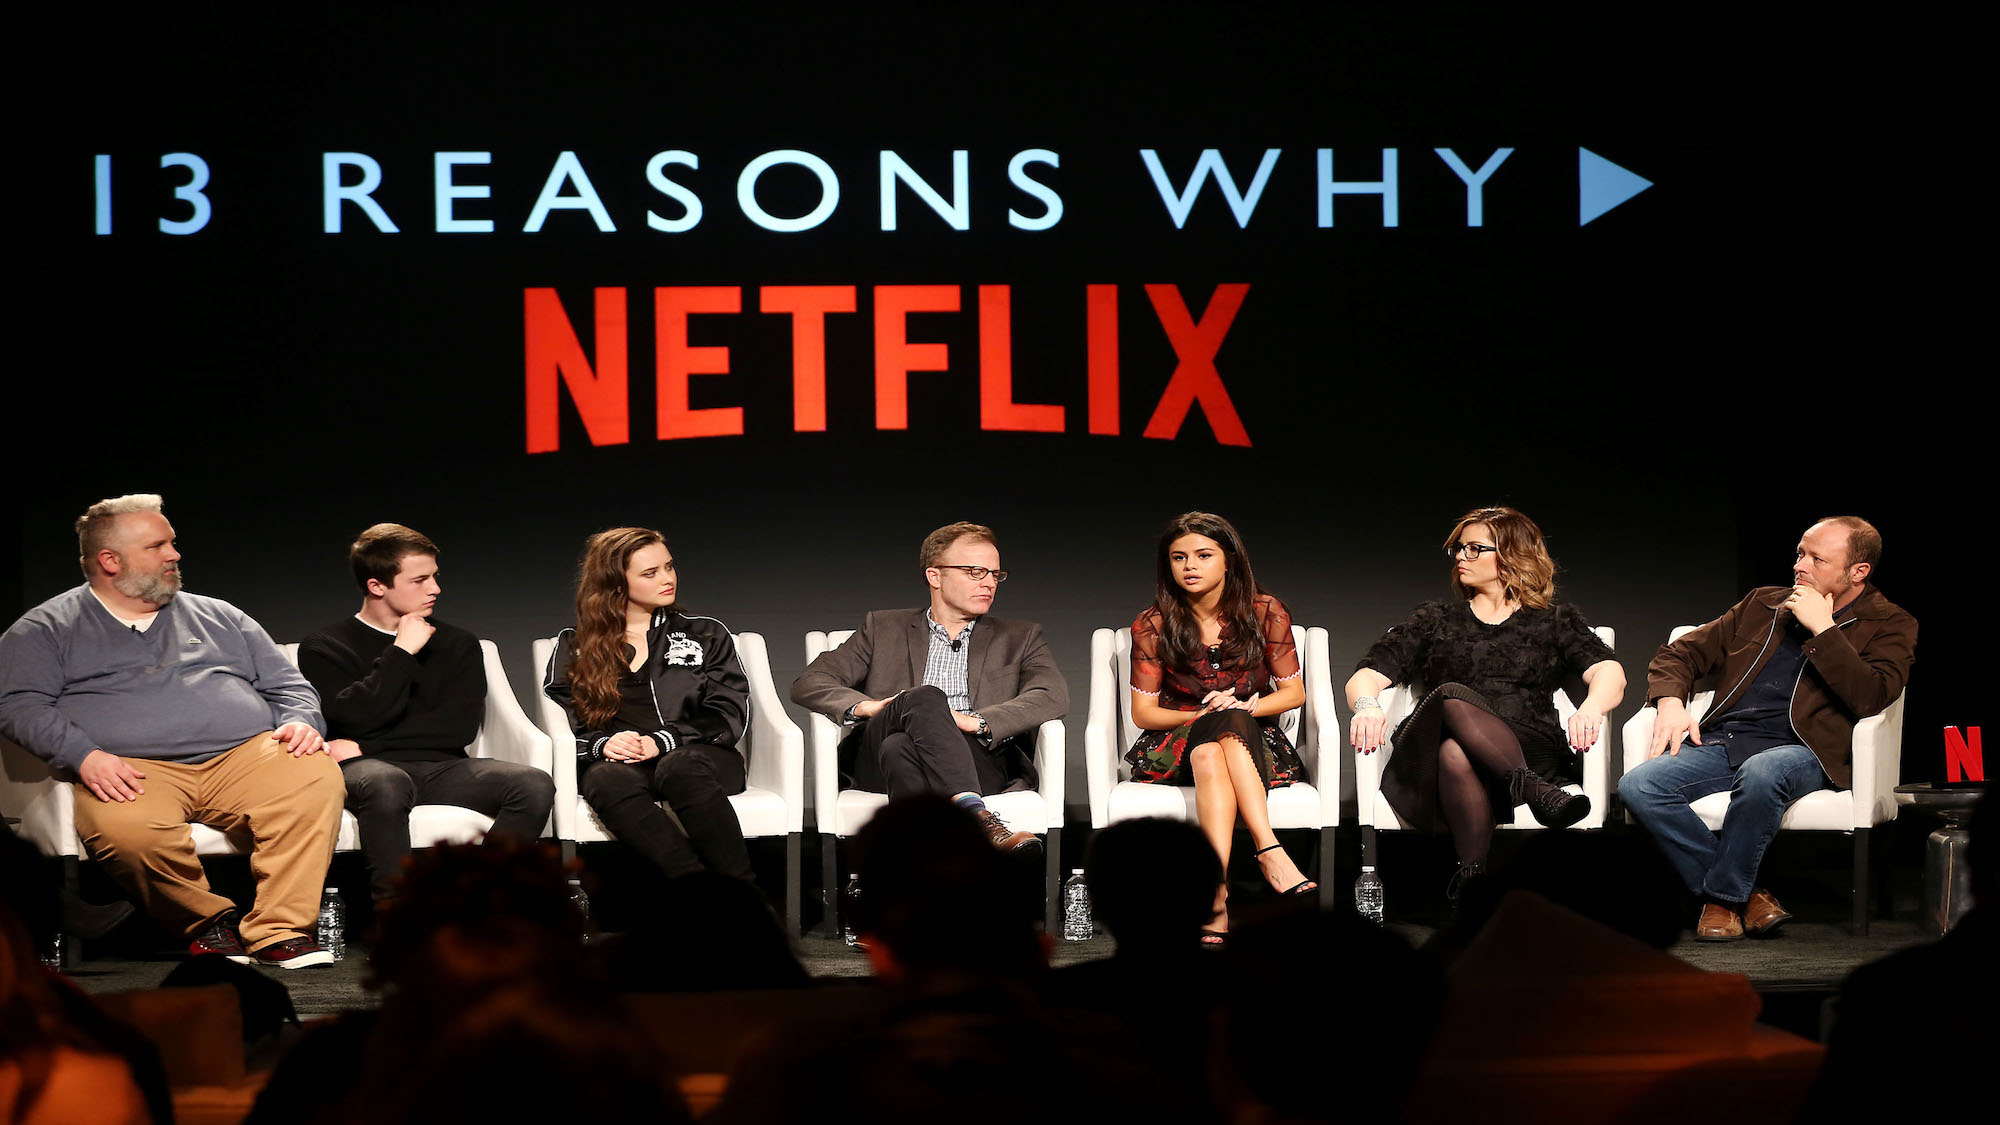 Con un emotivo video, Netflix anunció la fecha de estreno de la última temporada de 13 Reasons Why